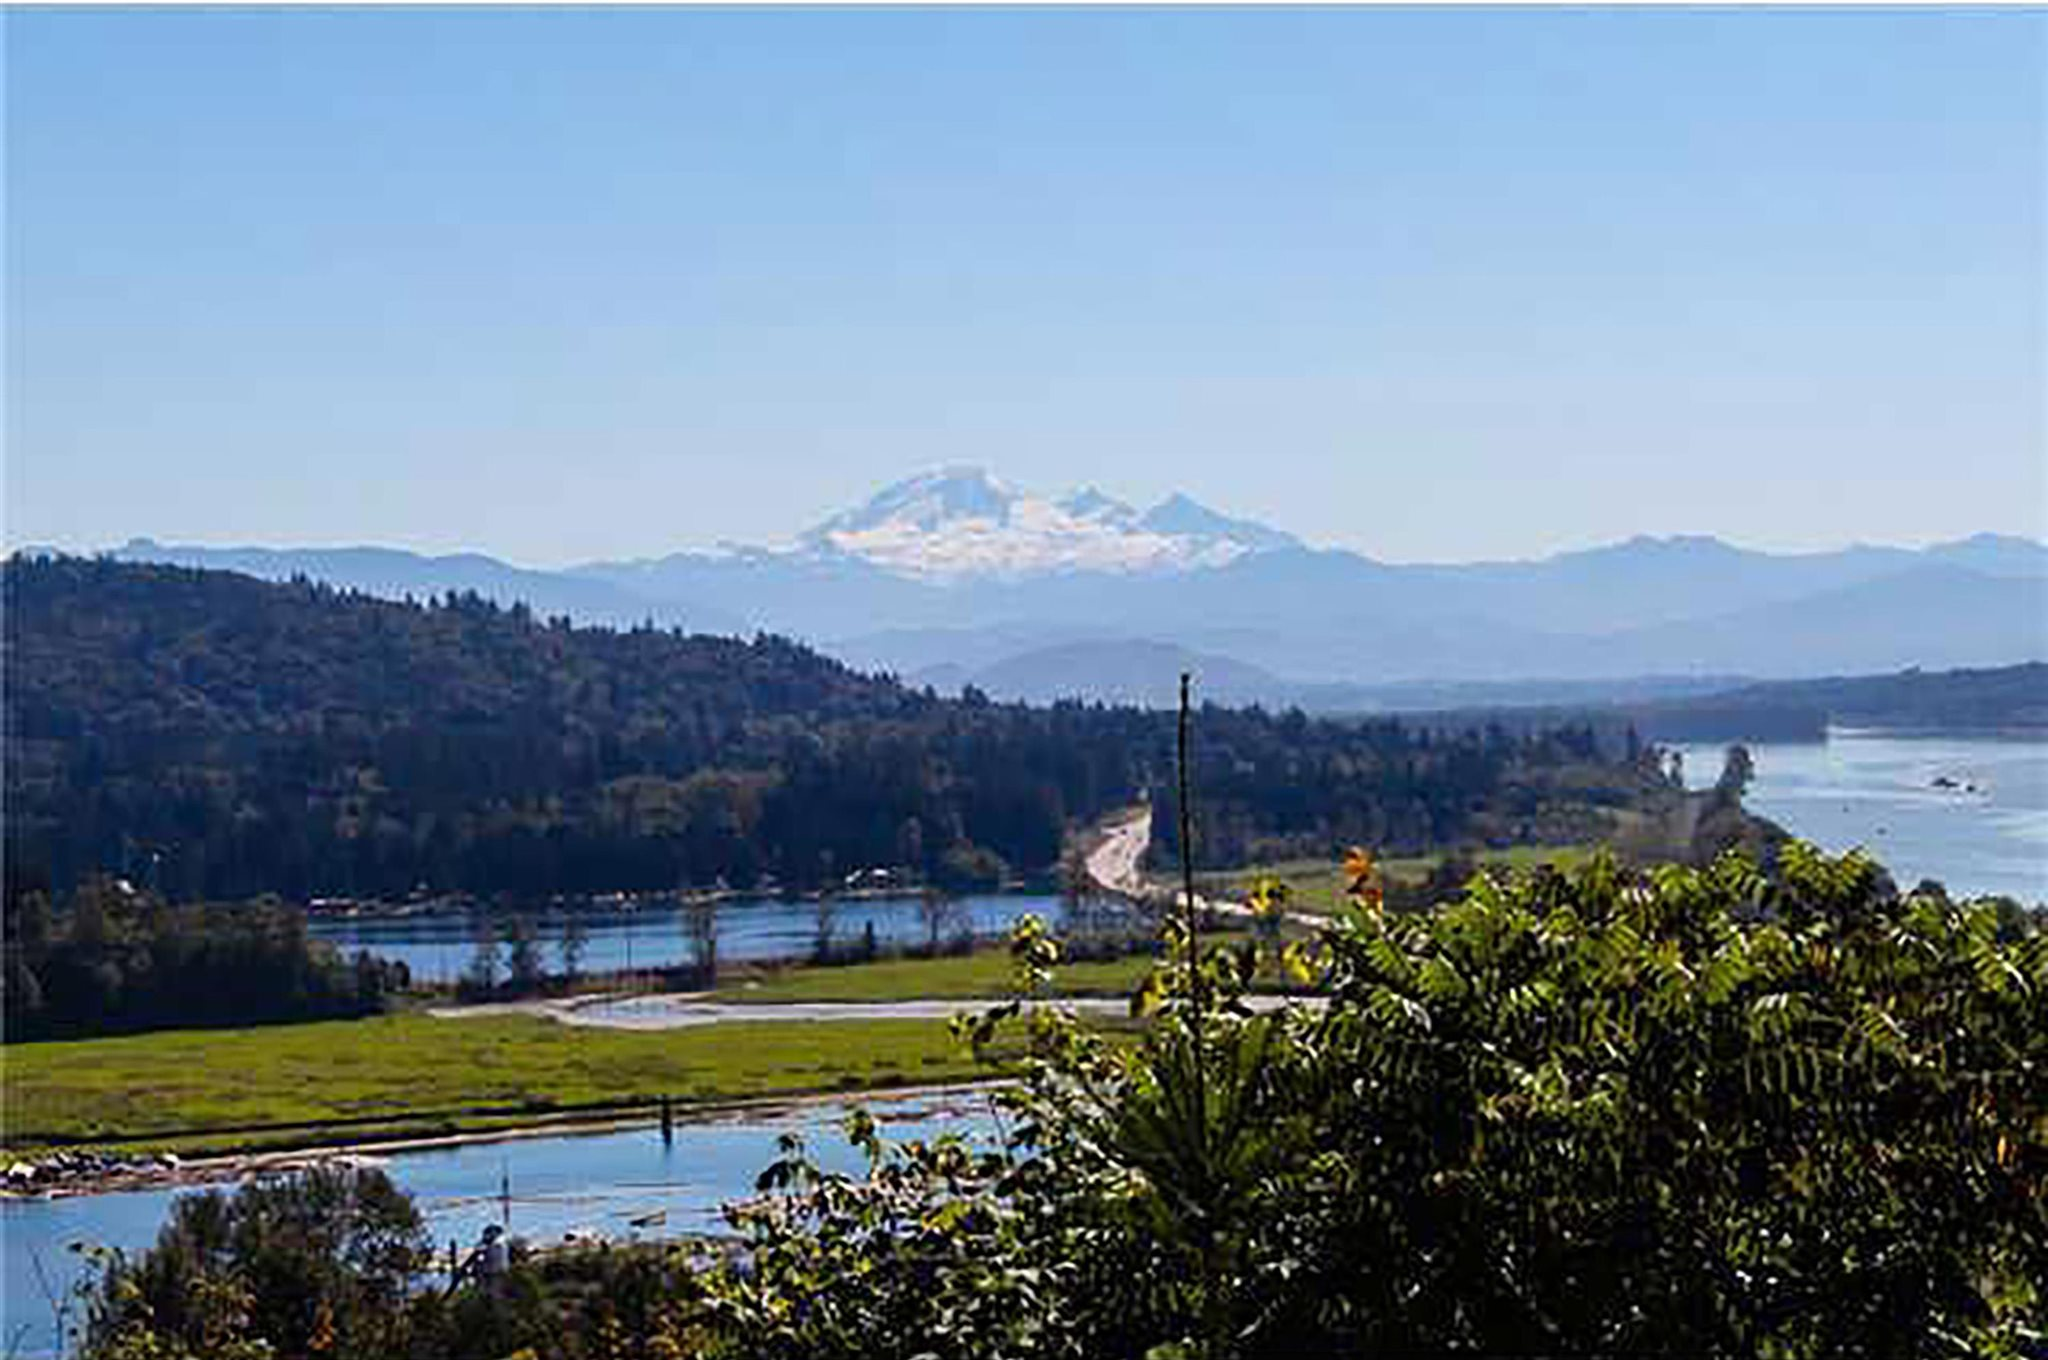 PICTURESQUE - MOUNTAIN RANGES, FLOWING RIVERS AND SHIMMERING LAKE VIEWS. Top 5 reasons you will want this beautiful estate 1) VIEWS: Mt Baker, Silvermere Lake & Fraser river to mention a few. Full 180 deg. of views from every window 2) PRIVACY: Just under 4 acres of manicured perfection, gated, long circular driveway allows for ample parking & structures to be added in the future 3) LUXURY: 4178sq ft Rancher w/ daylight basement equipped with amazing country kitchen, roaring fireplaces, sprawling decks, full bar, spa bathroom & custom wine room 4) LOCATION: Unique plateau lot, close to a wealth of outdoor amenities 5) RARE: this isn't your average property - a rare mix of unbelievable pride of homeownership.